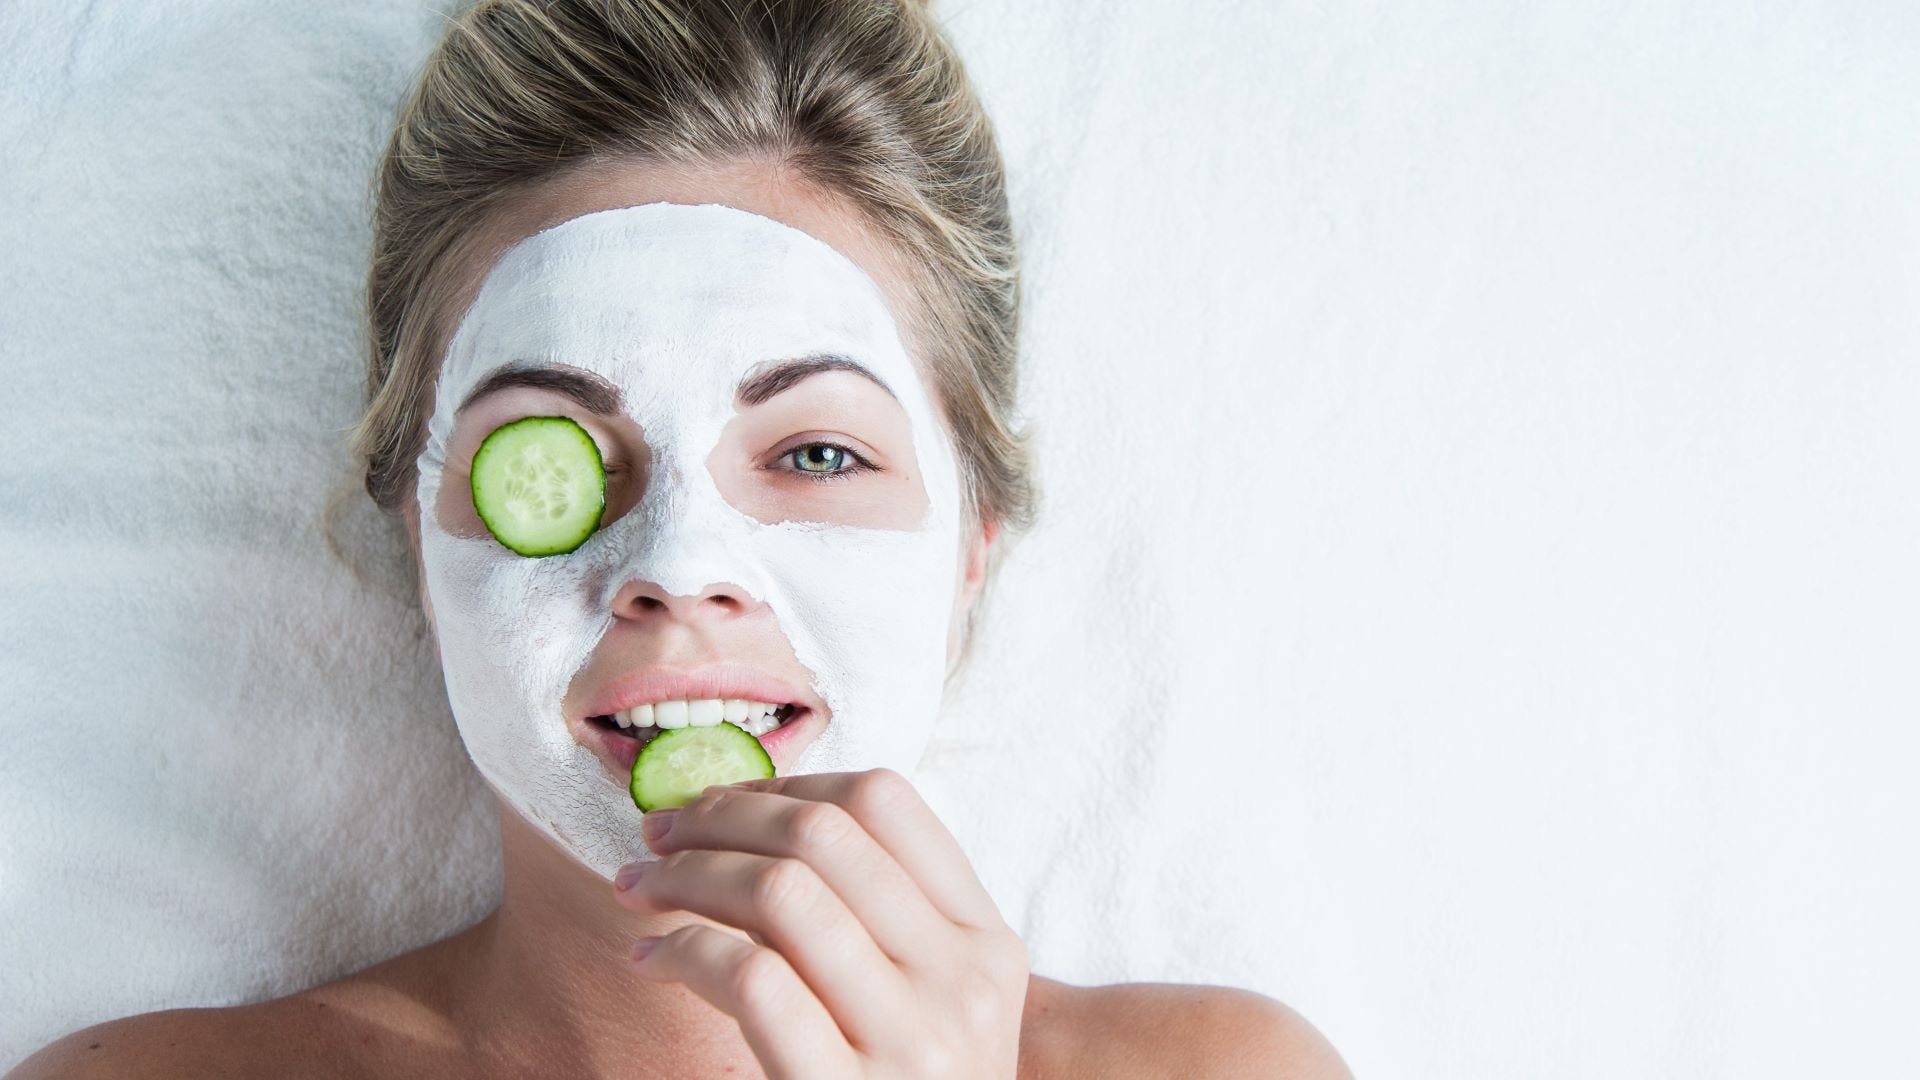 A woman eating a cucumber slice, with another resting on her eye.